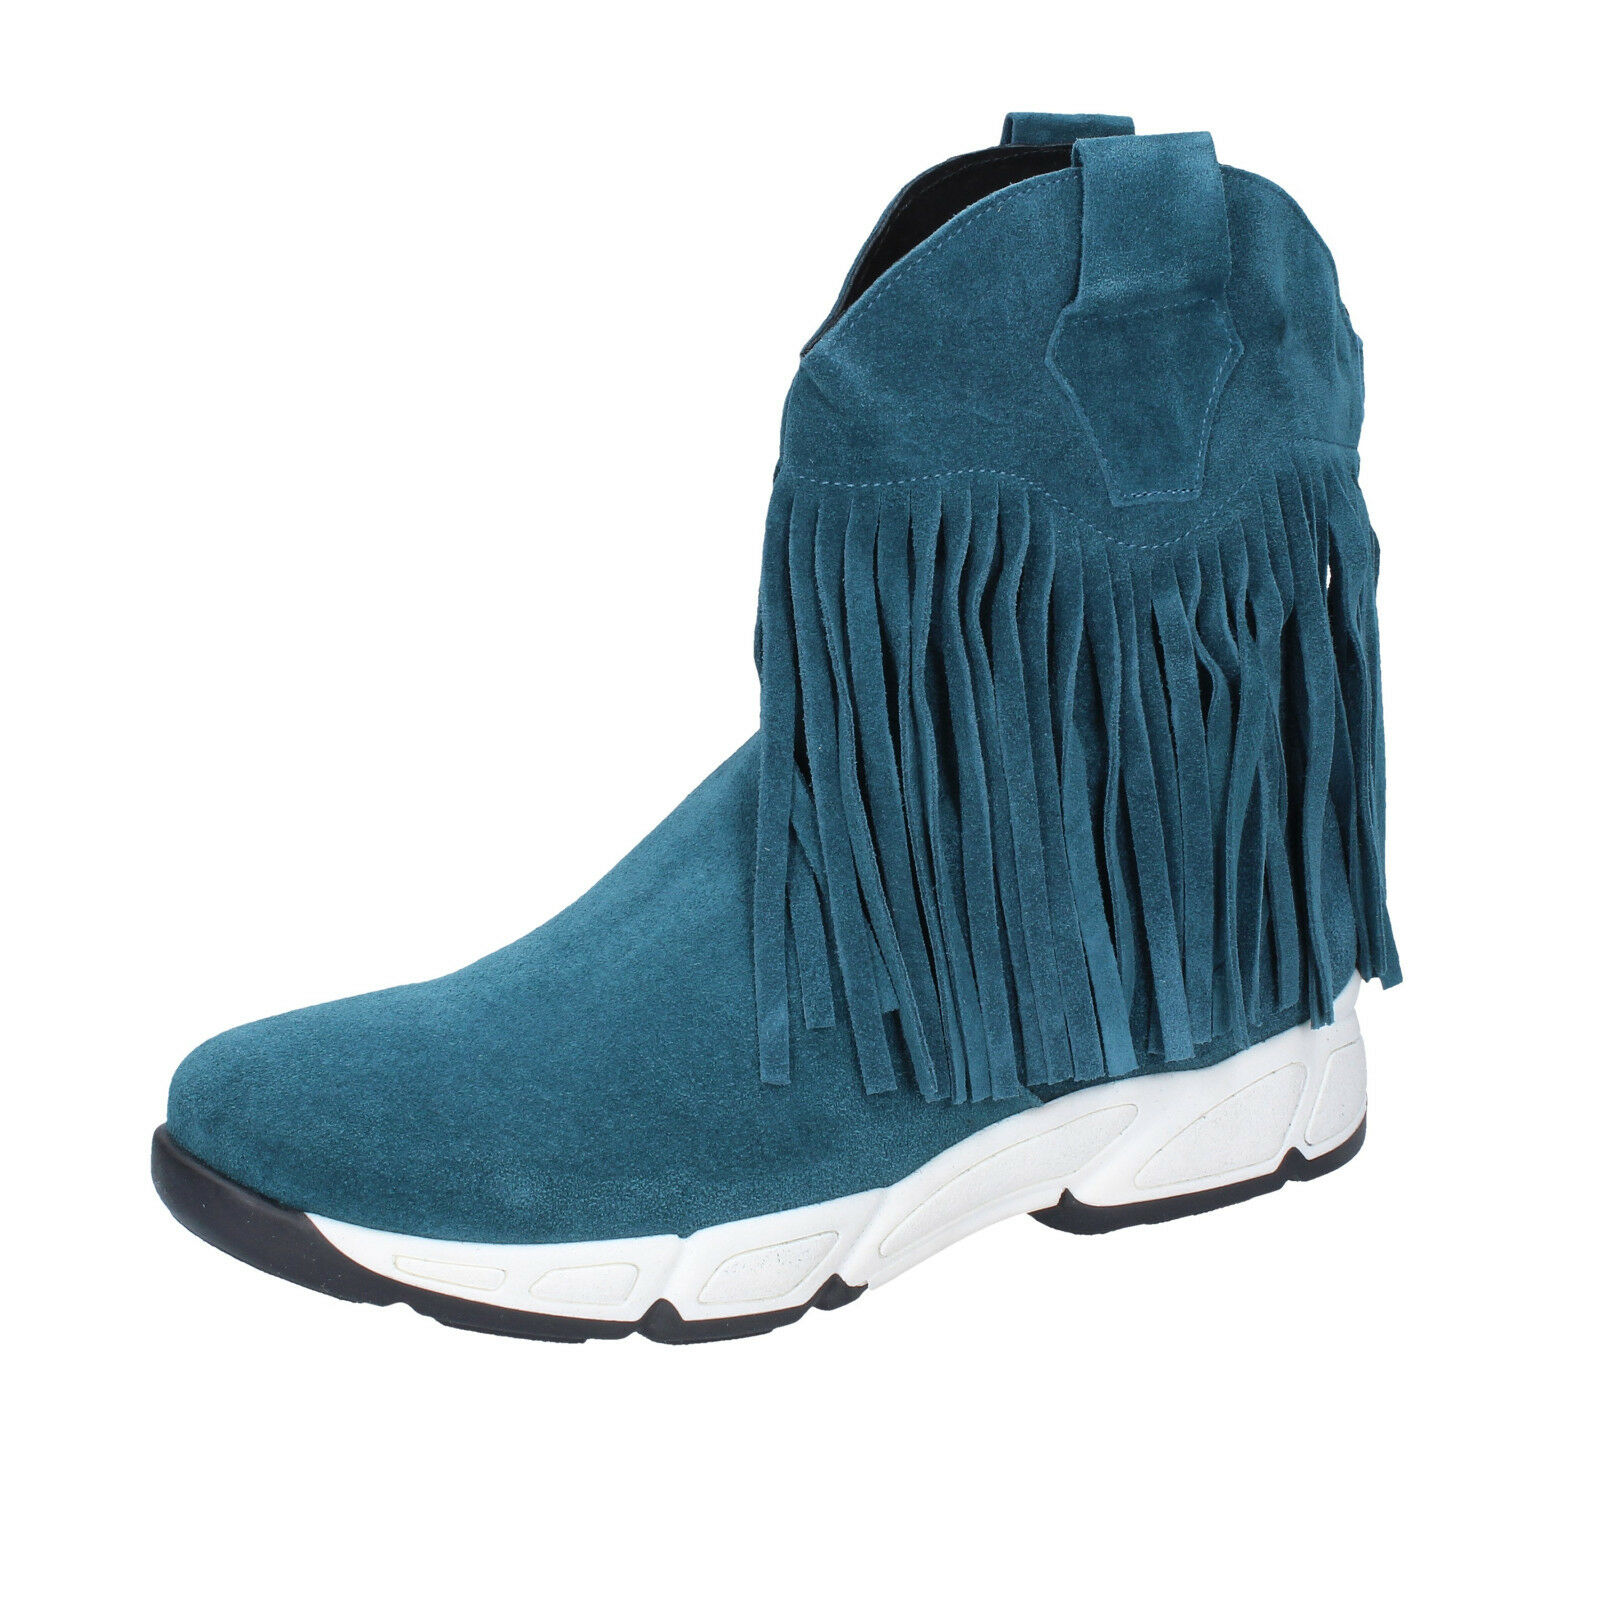 women's shoes OLGA RUBINI 5 () ankle boots green suede BX783-35